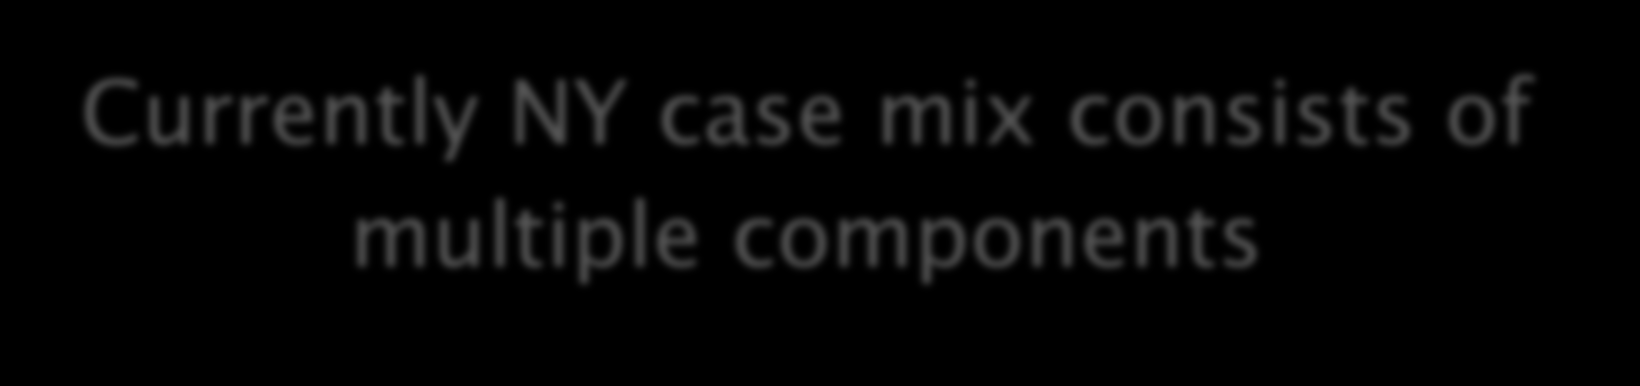 Currently NY case mix consists of multiple components Direct